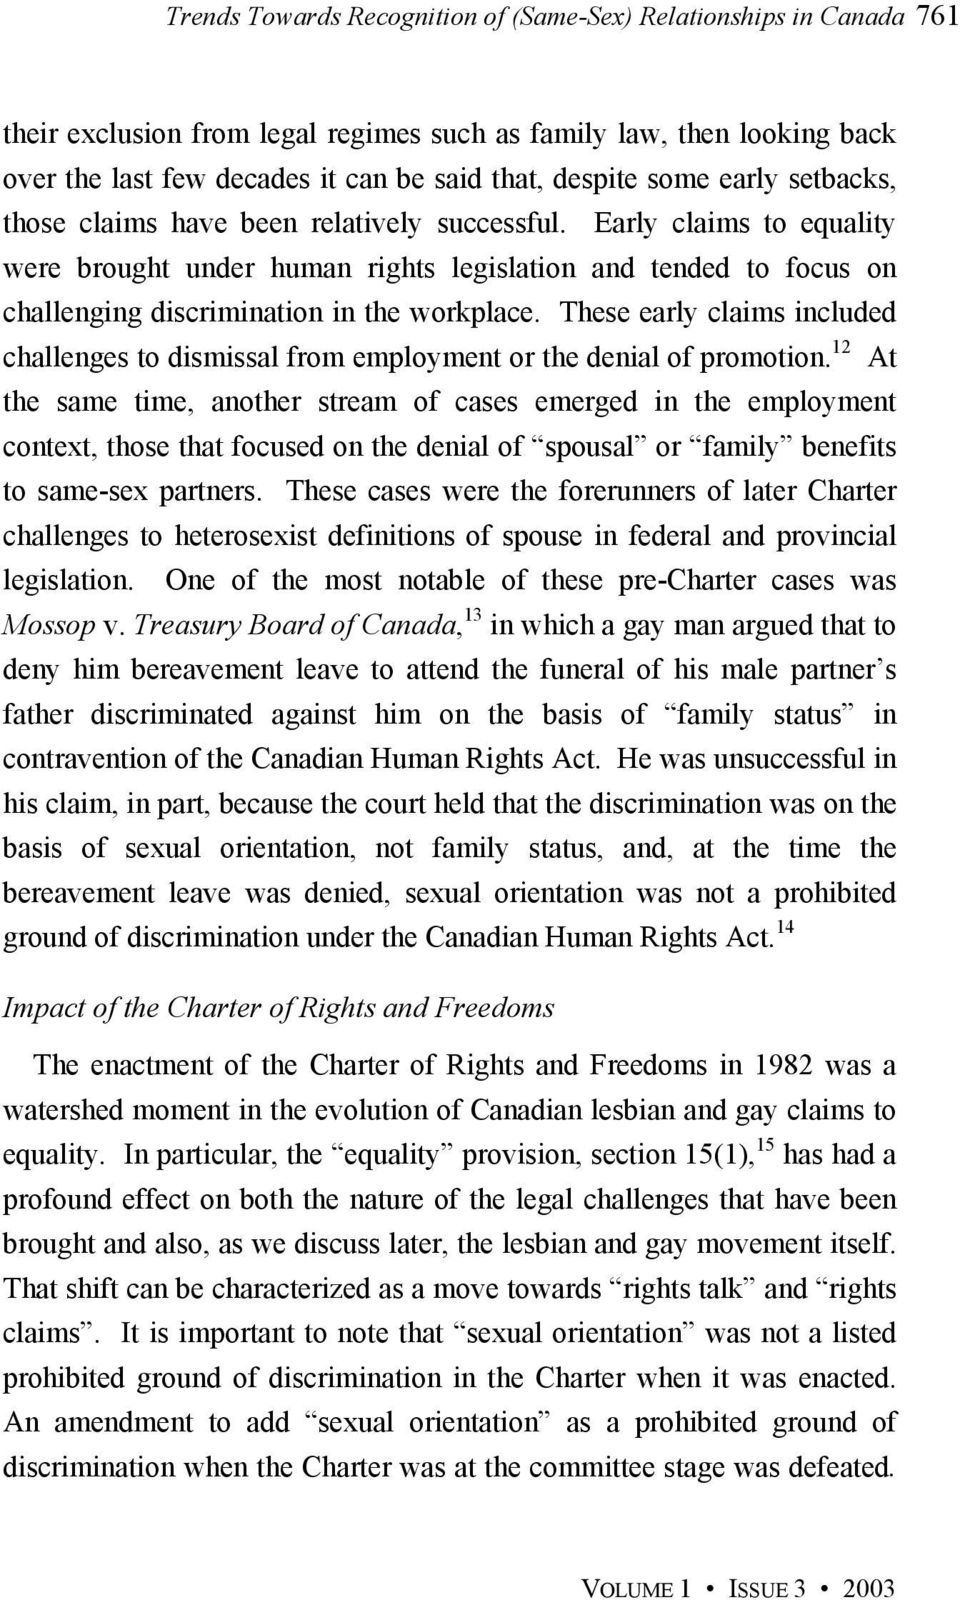 Early claims to equality were brought under human rights legislation and tended to focus on challenging discrimination in the workplace.